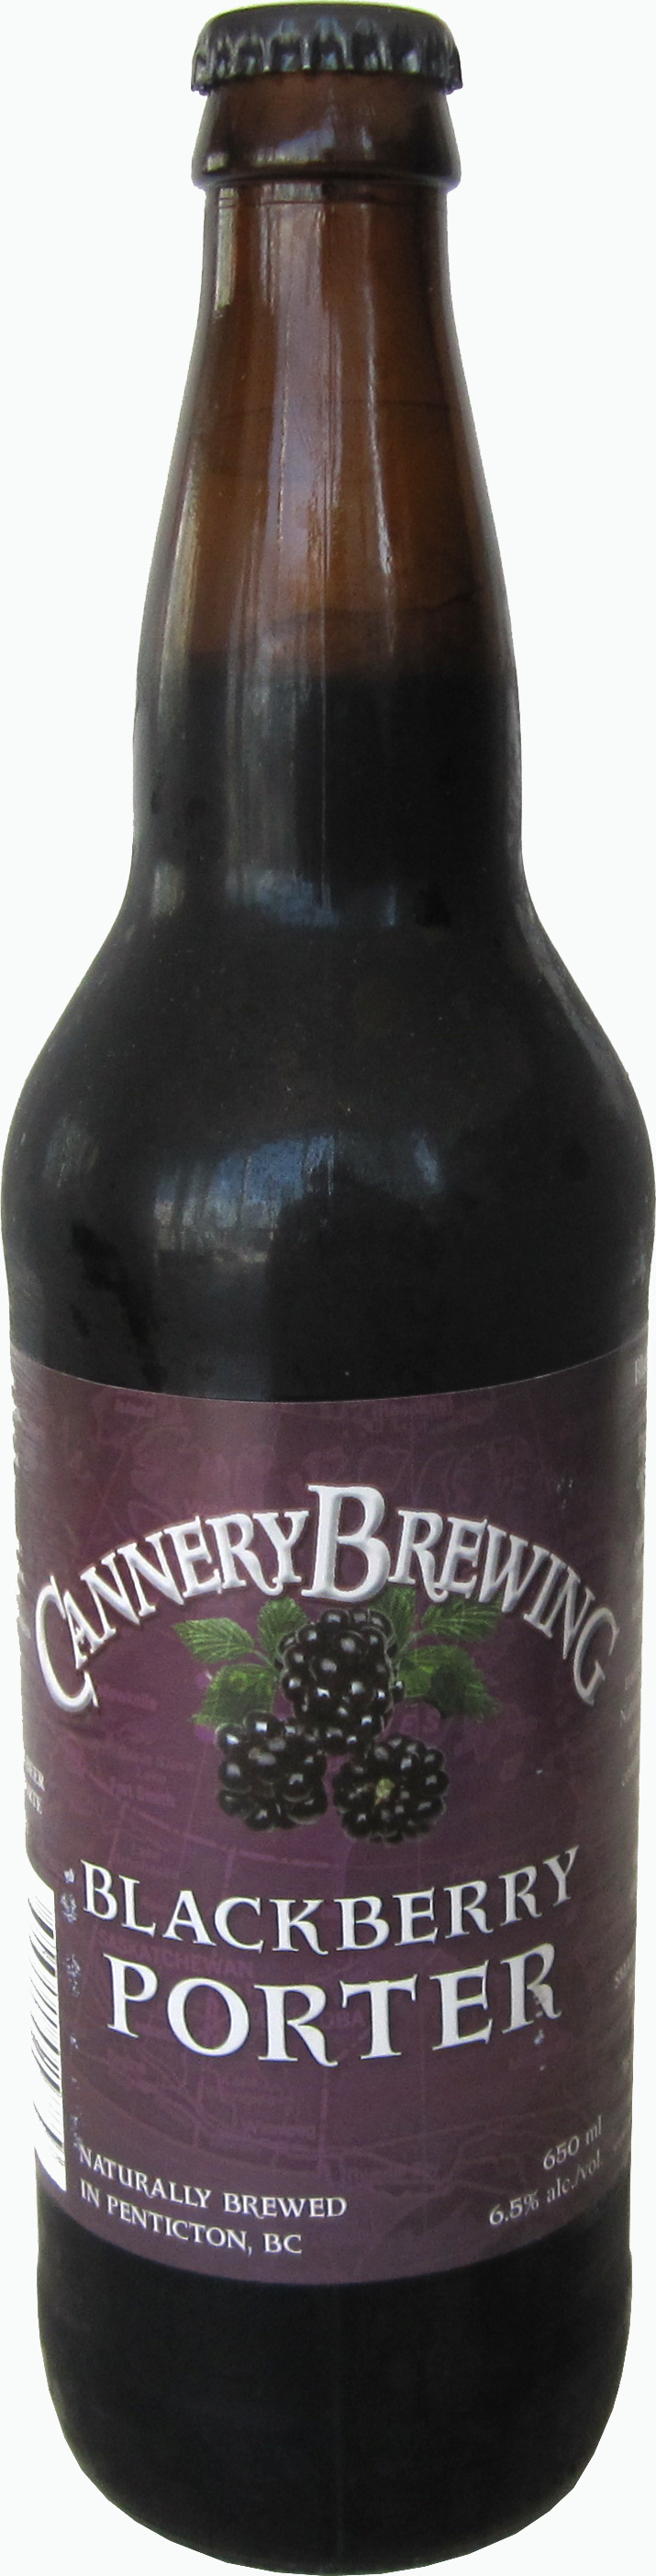 Le Meilleur Tasting The Cannery Brewery Blackberry Porter Definitive Ale Ce Mois Ci